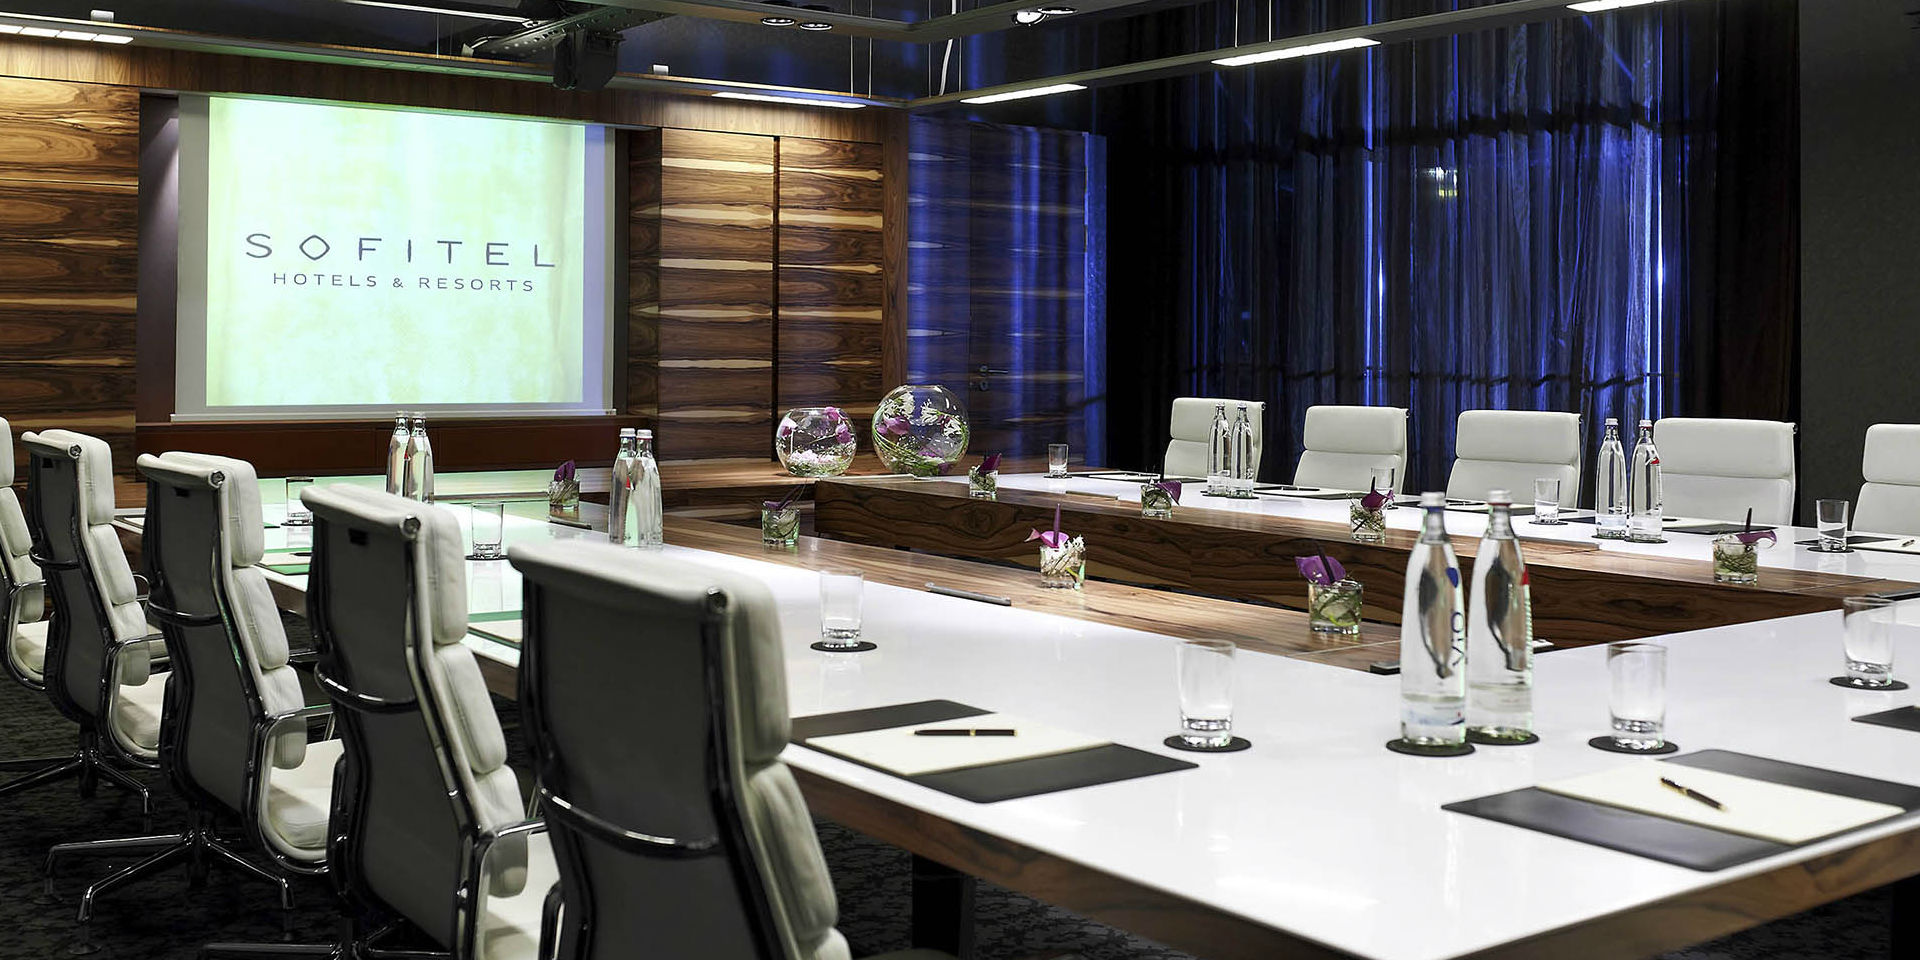 How to boost revenue from your hotel's meetings and events business